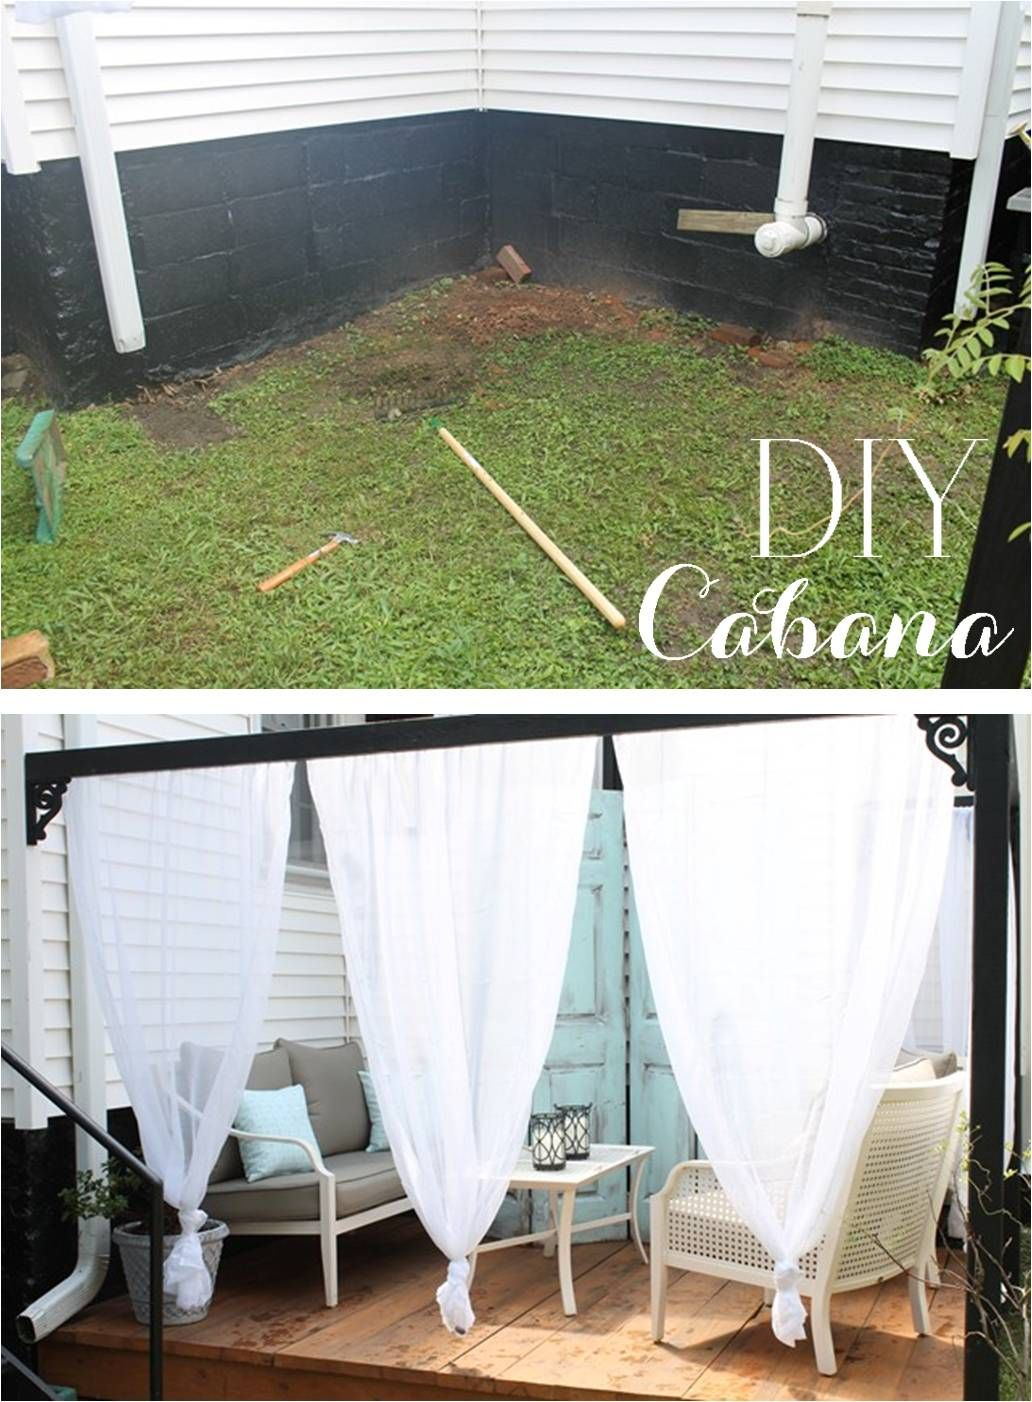 DIY Outdoor Cabana with Curtains & DIY Outdoor Cabana with Curtains | Outdoor cabana Cabana and Canopy